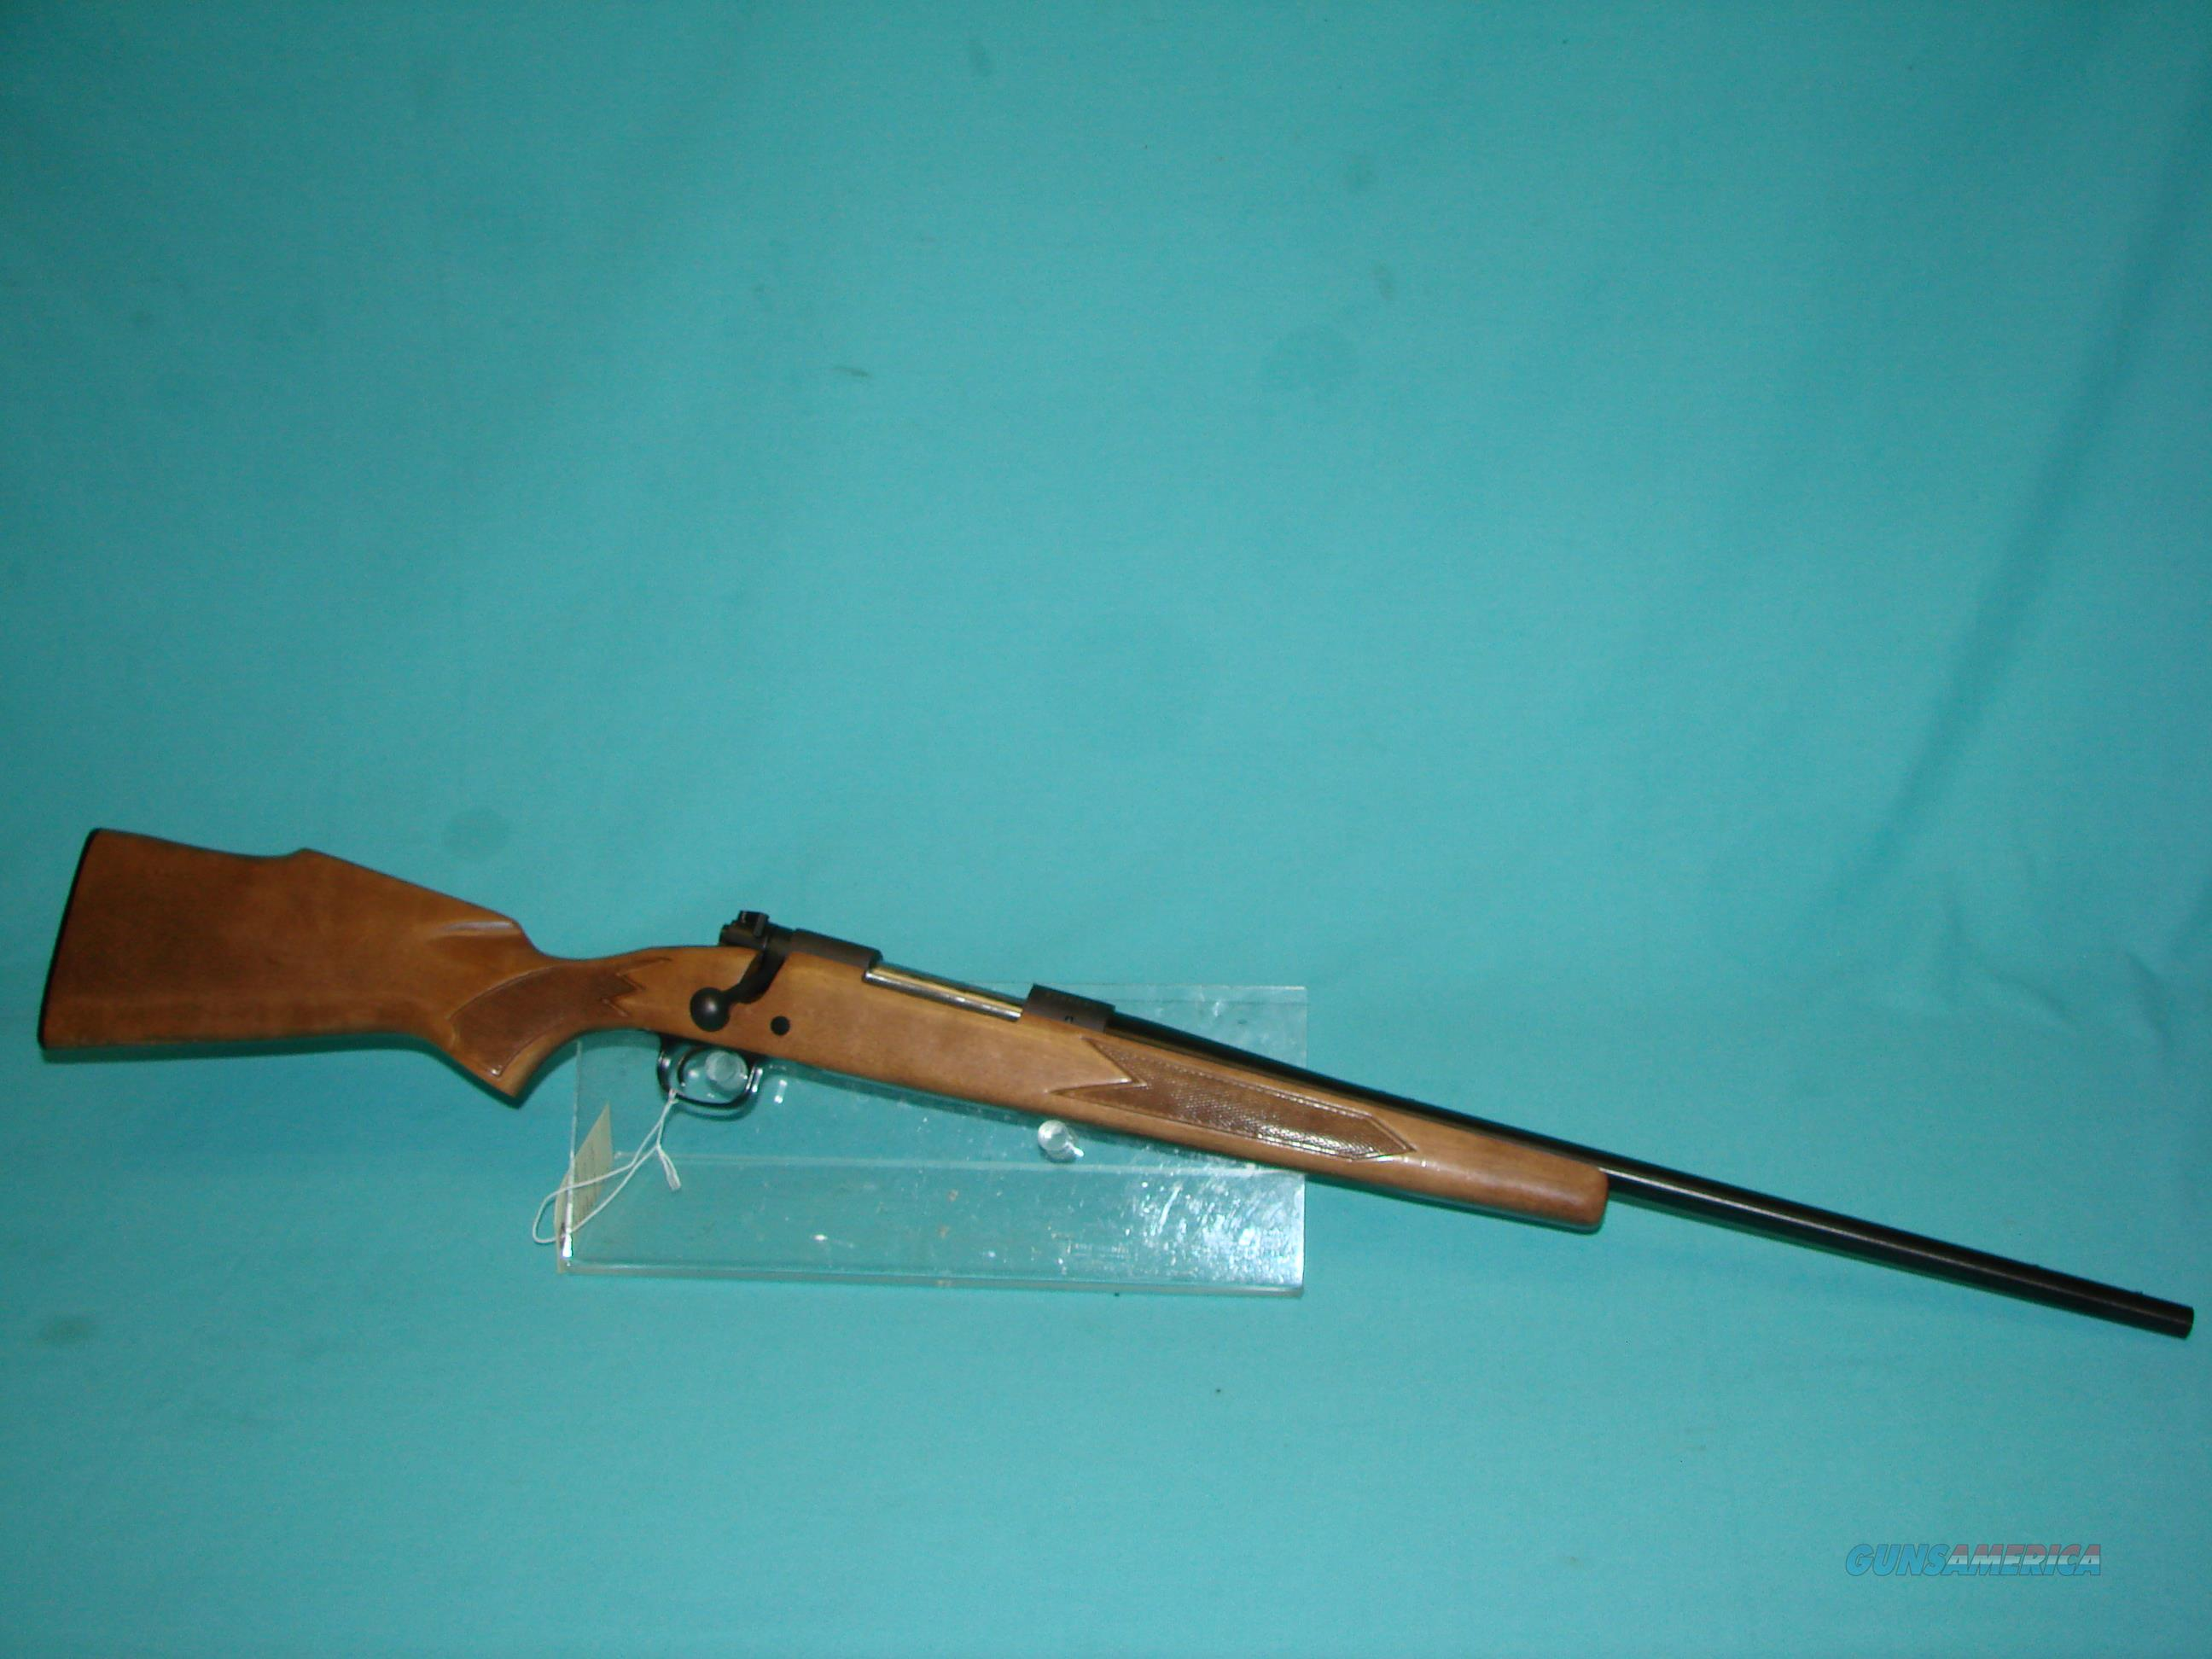 Winchester Model 670A  Guns > Rifles > Winchester Rifles - Modern Bolt/Auto/Single > Model 70 > Post-64